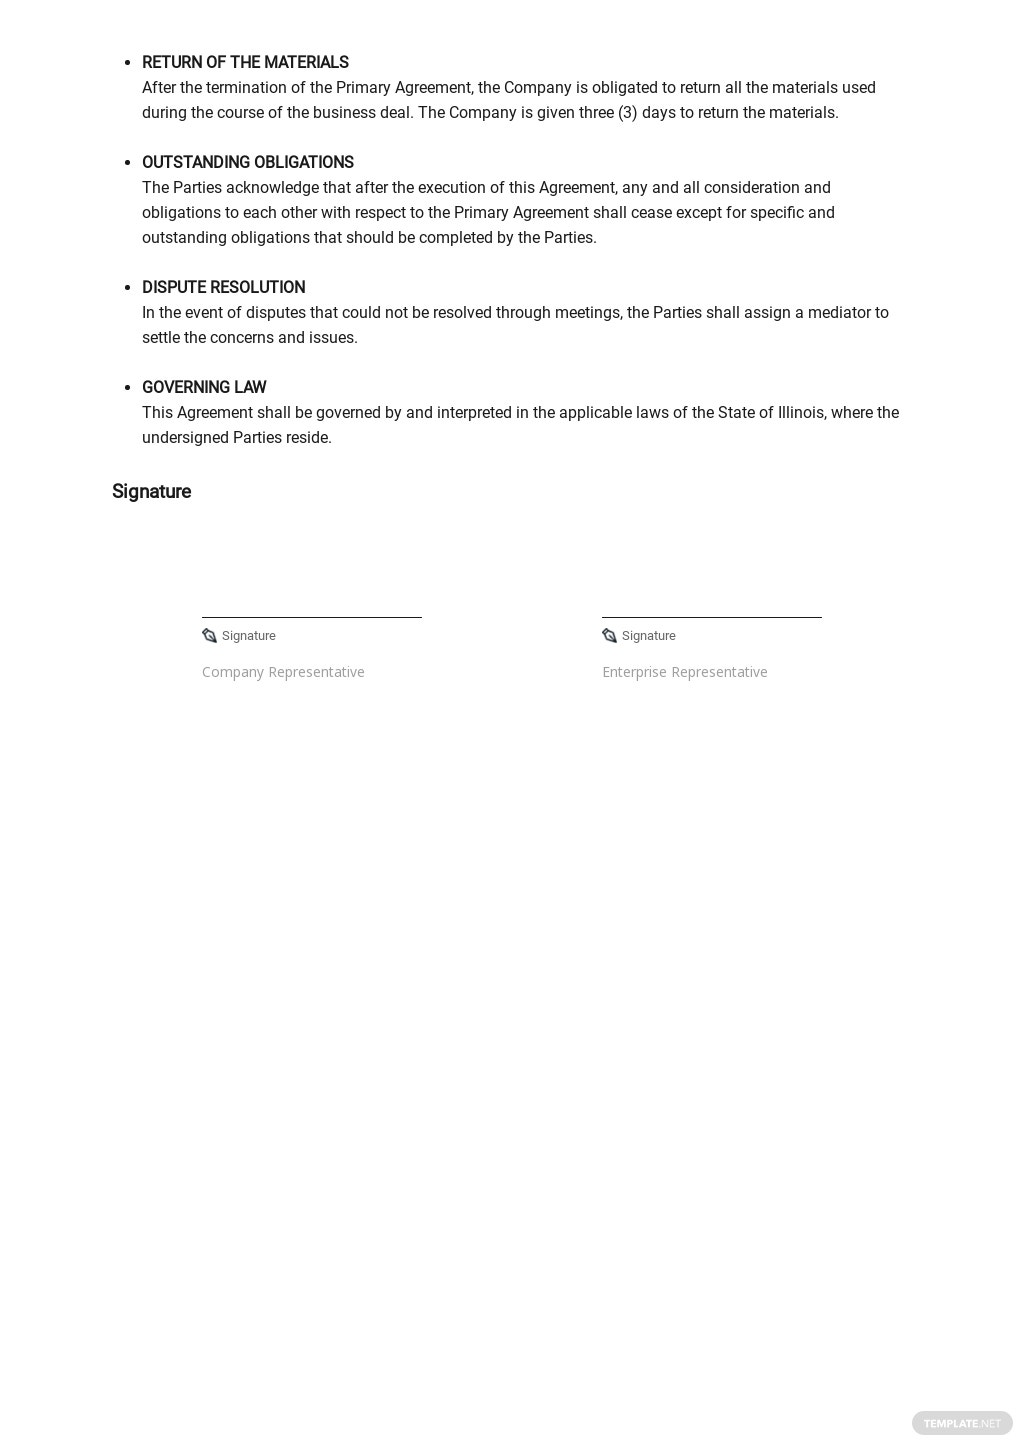 Termination of Contract Agreement Template 2.jpe